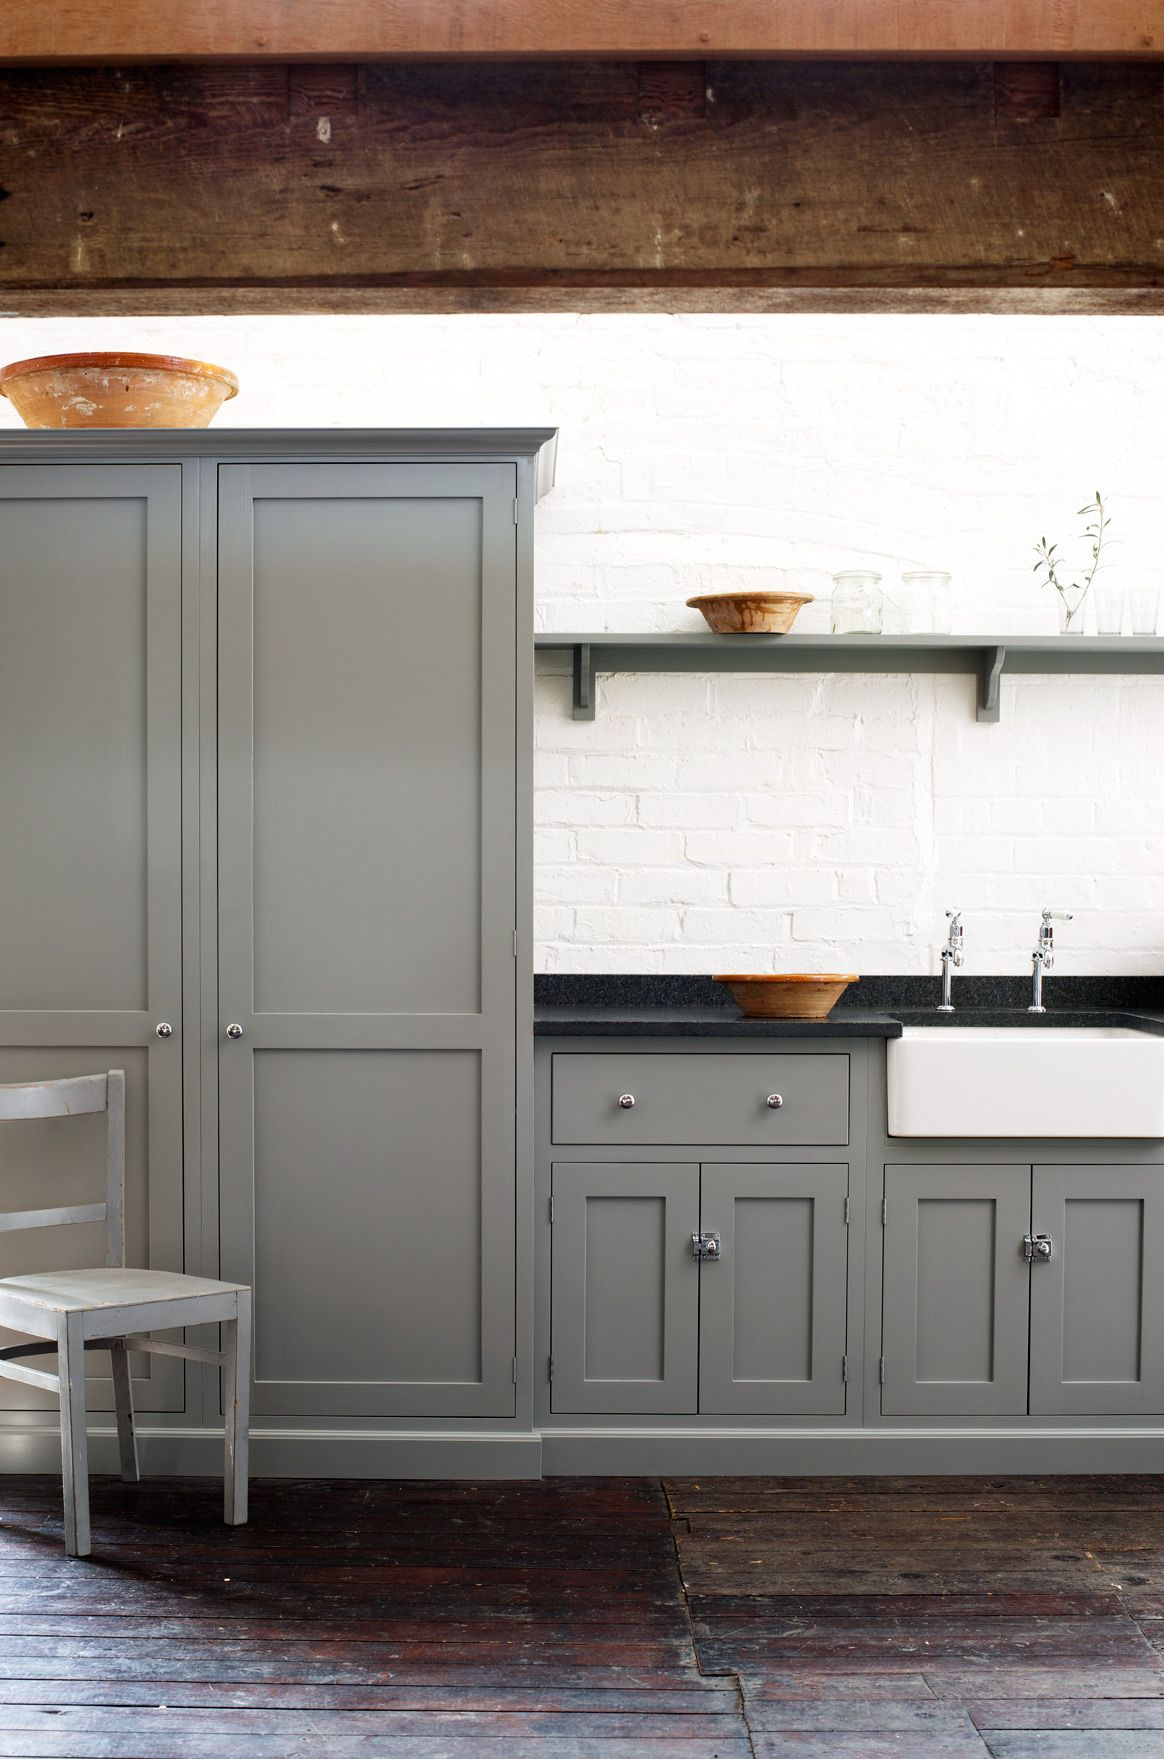 These Kitchens Will Never Go Out of Style | Pinterest | Tall pantry ...